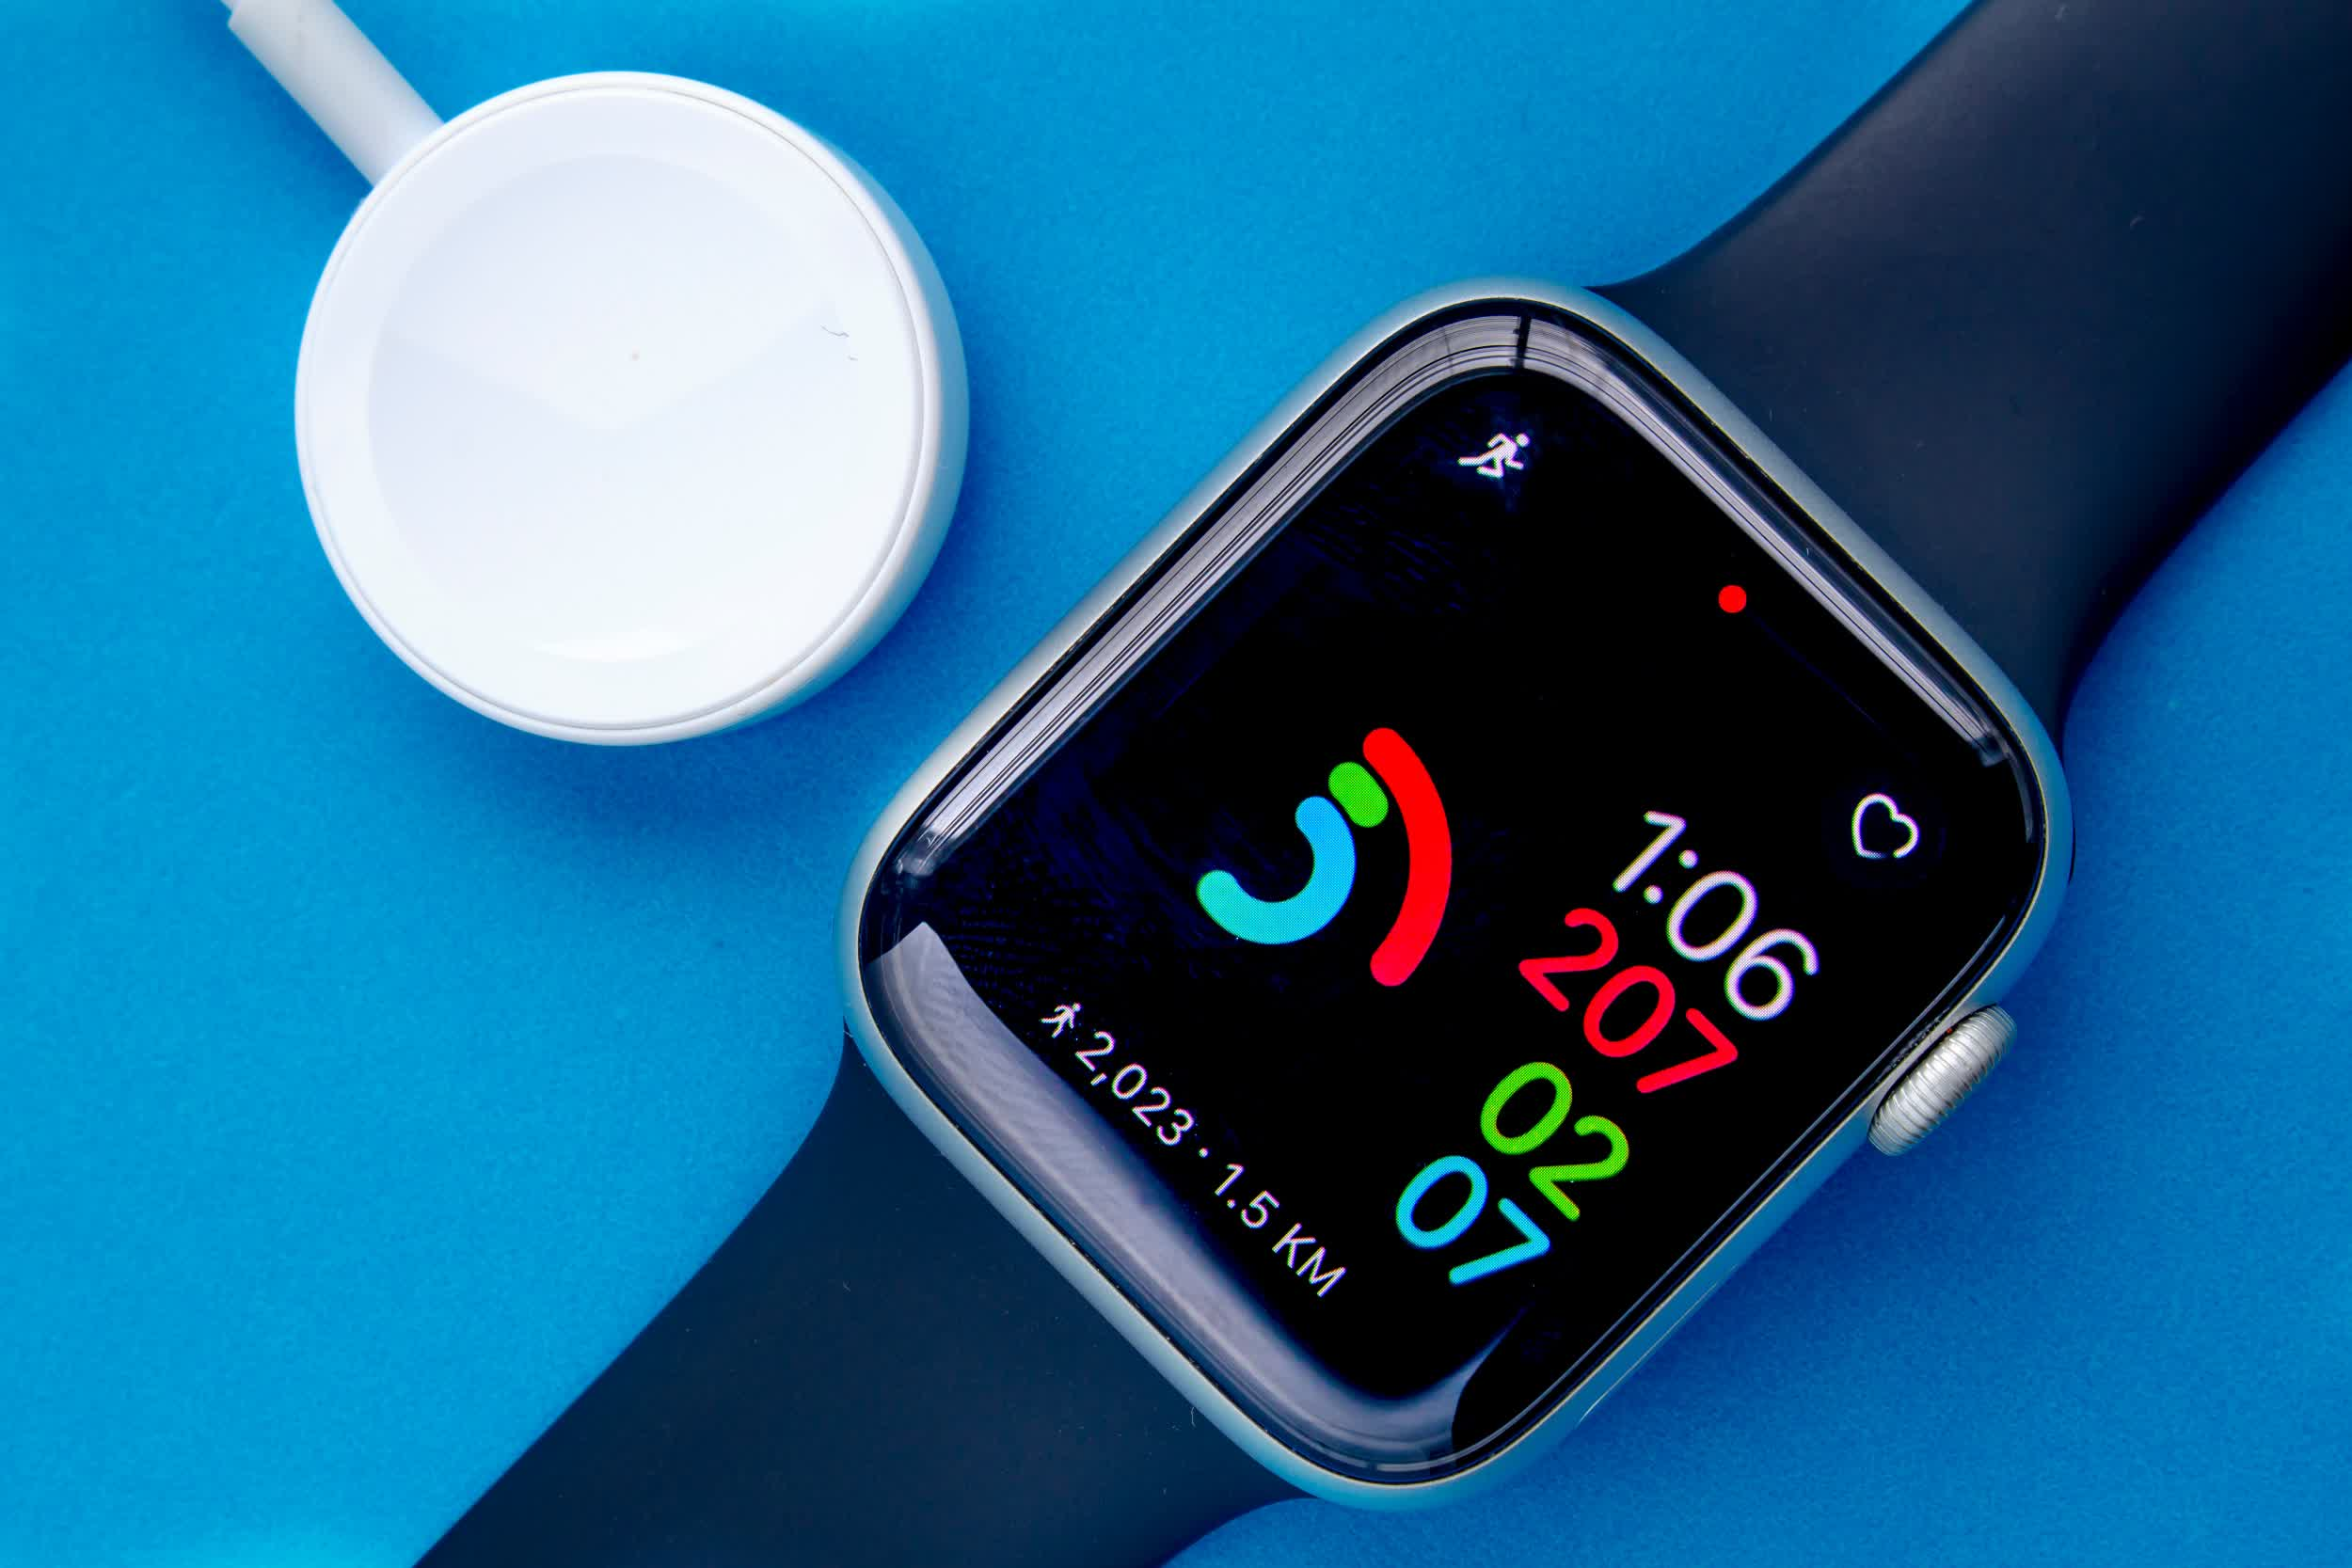 Smartwatch shipments stalled in 2020 due to the pandemic, but there were a few bright spots